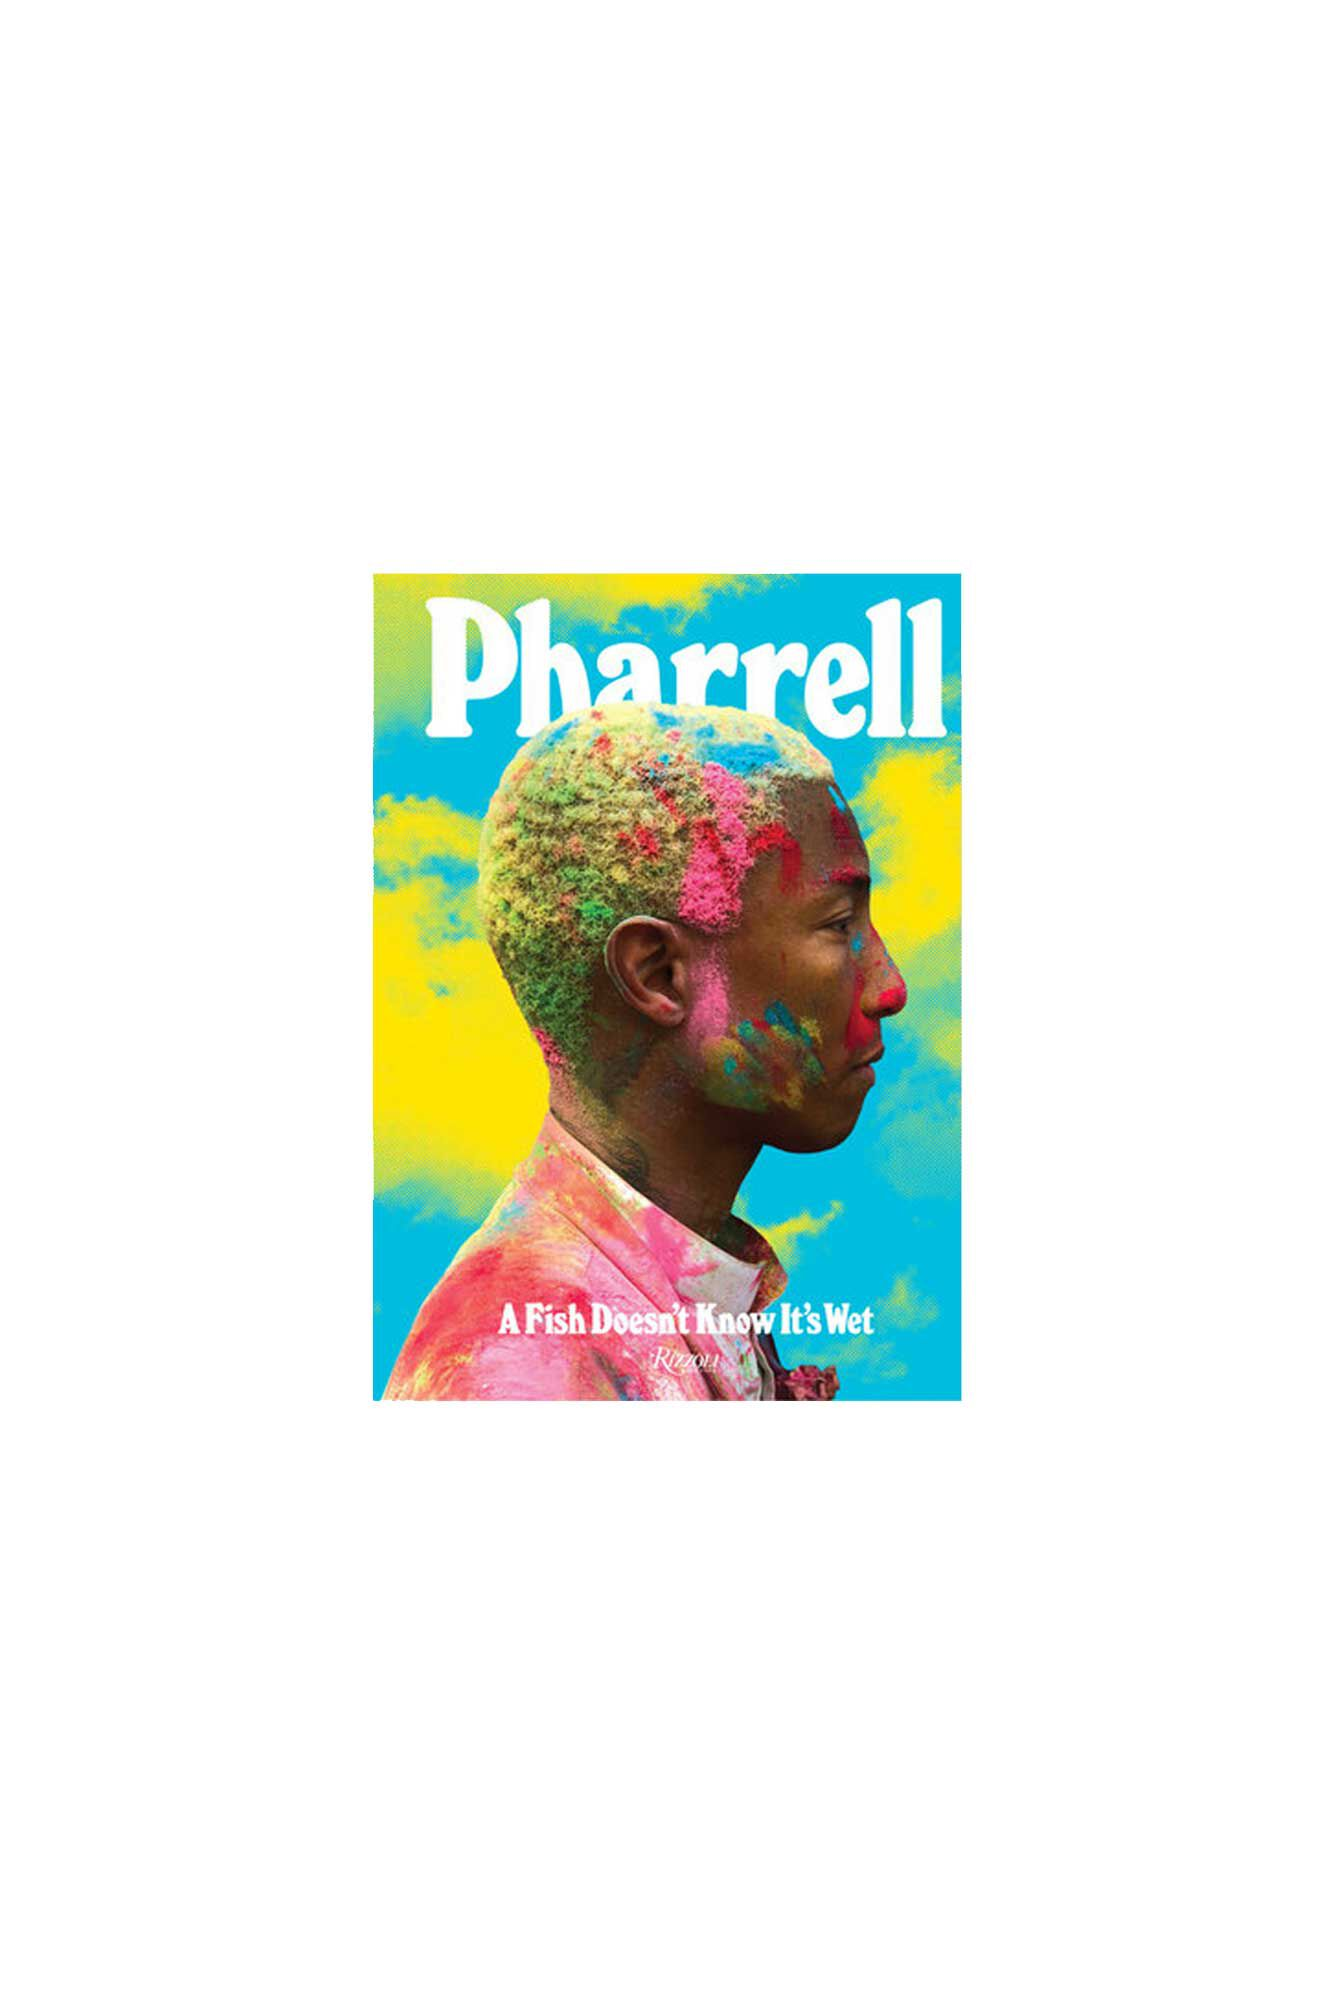 Pharell: a fish doesn't RI1040, MULTIPLE